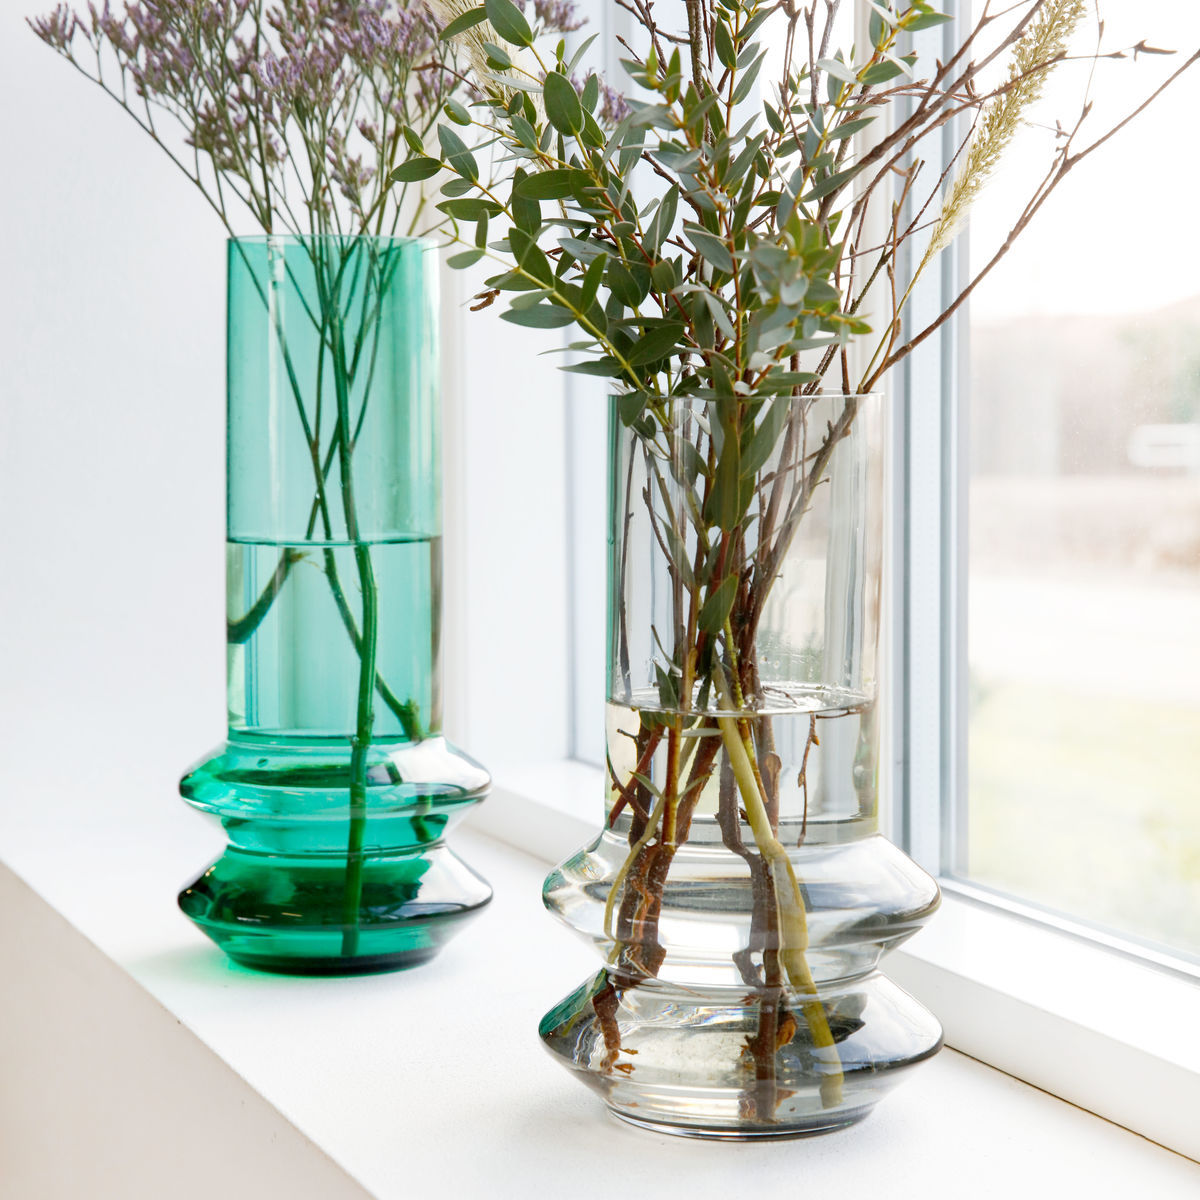 forms vase 14 x h 30 cm glass high green by house doctor. Black Bedroom Furniture Sets. Home Design Ideas